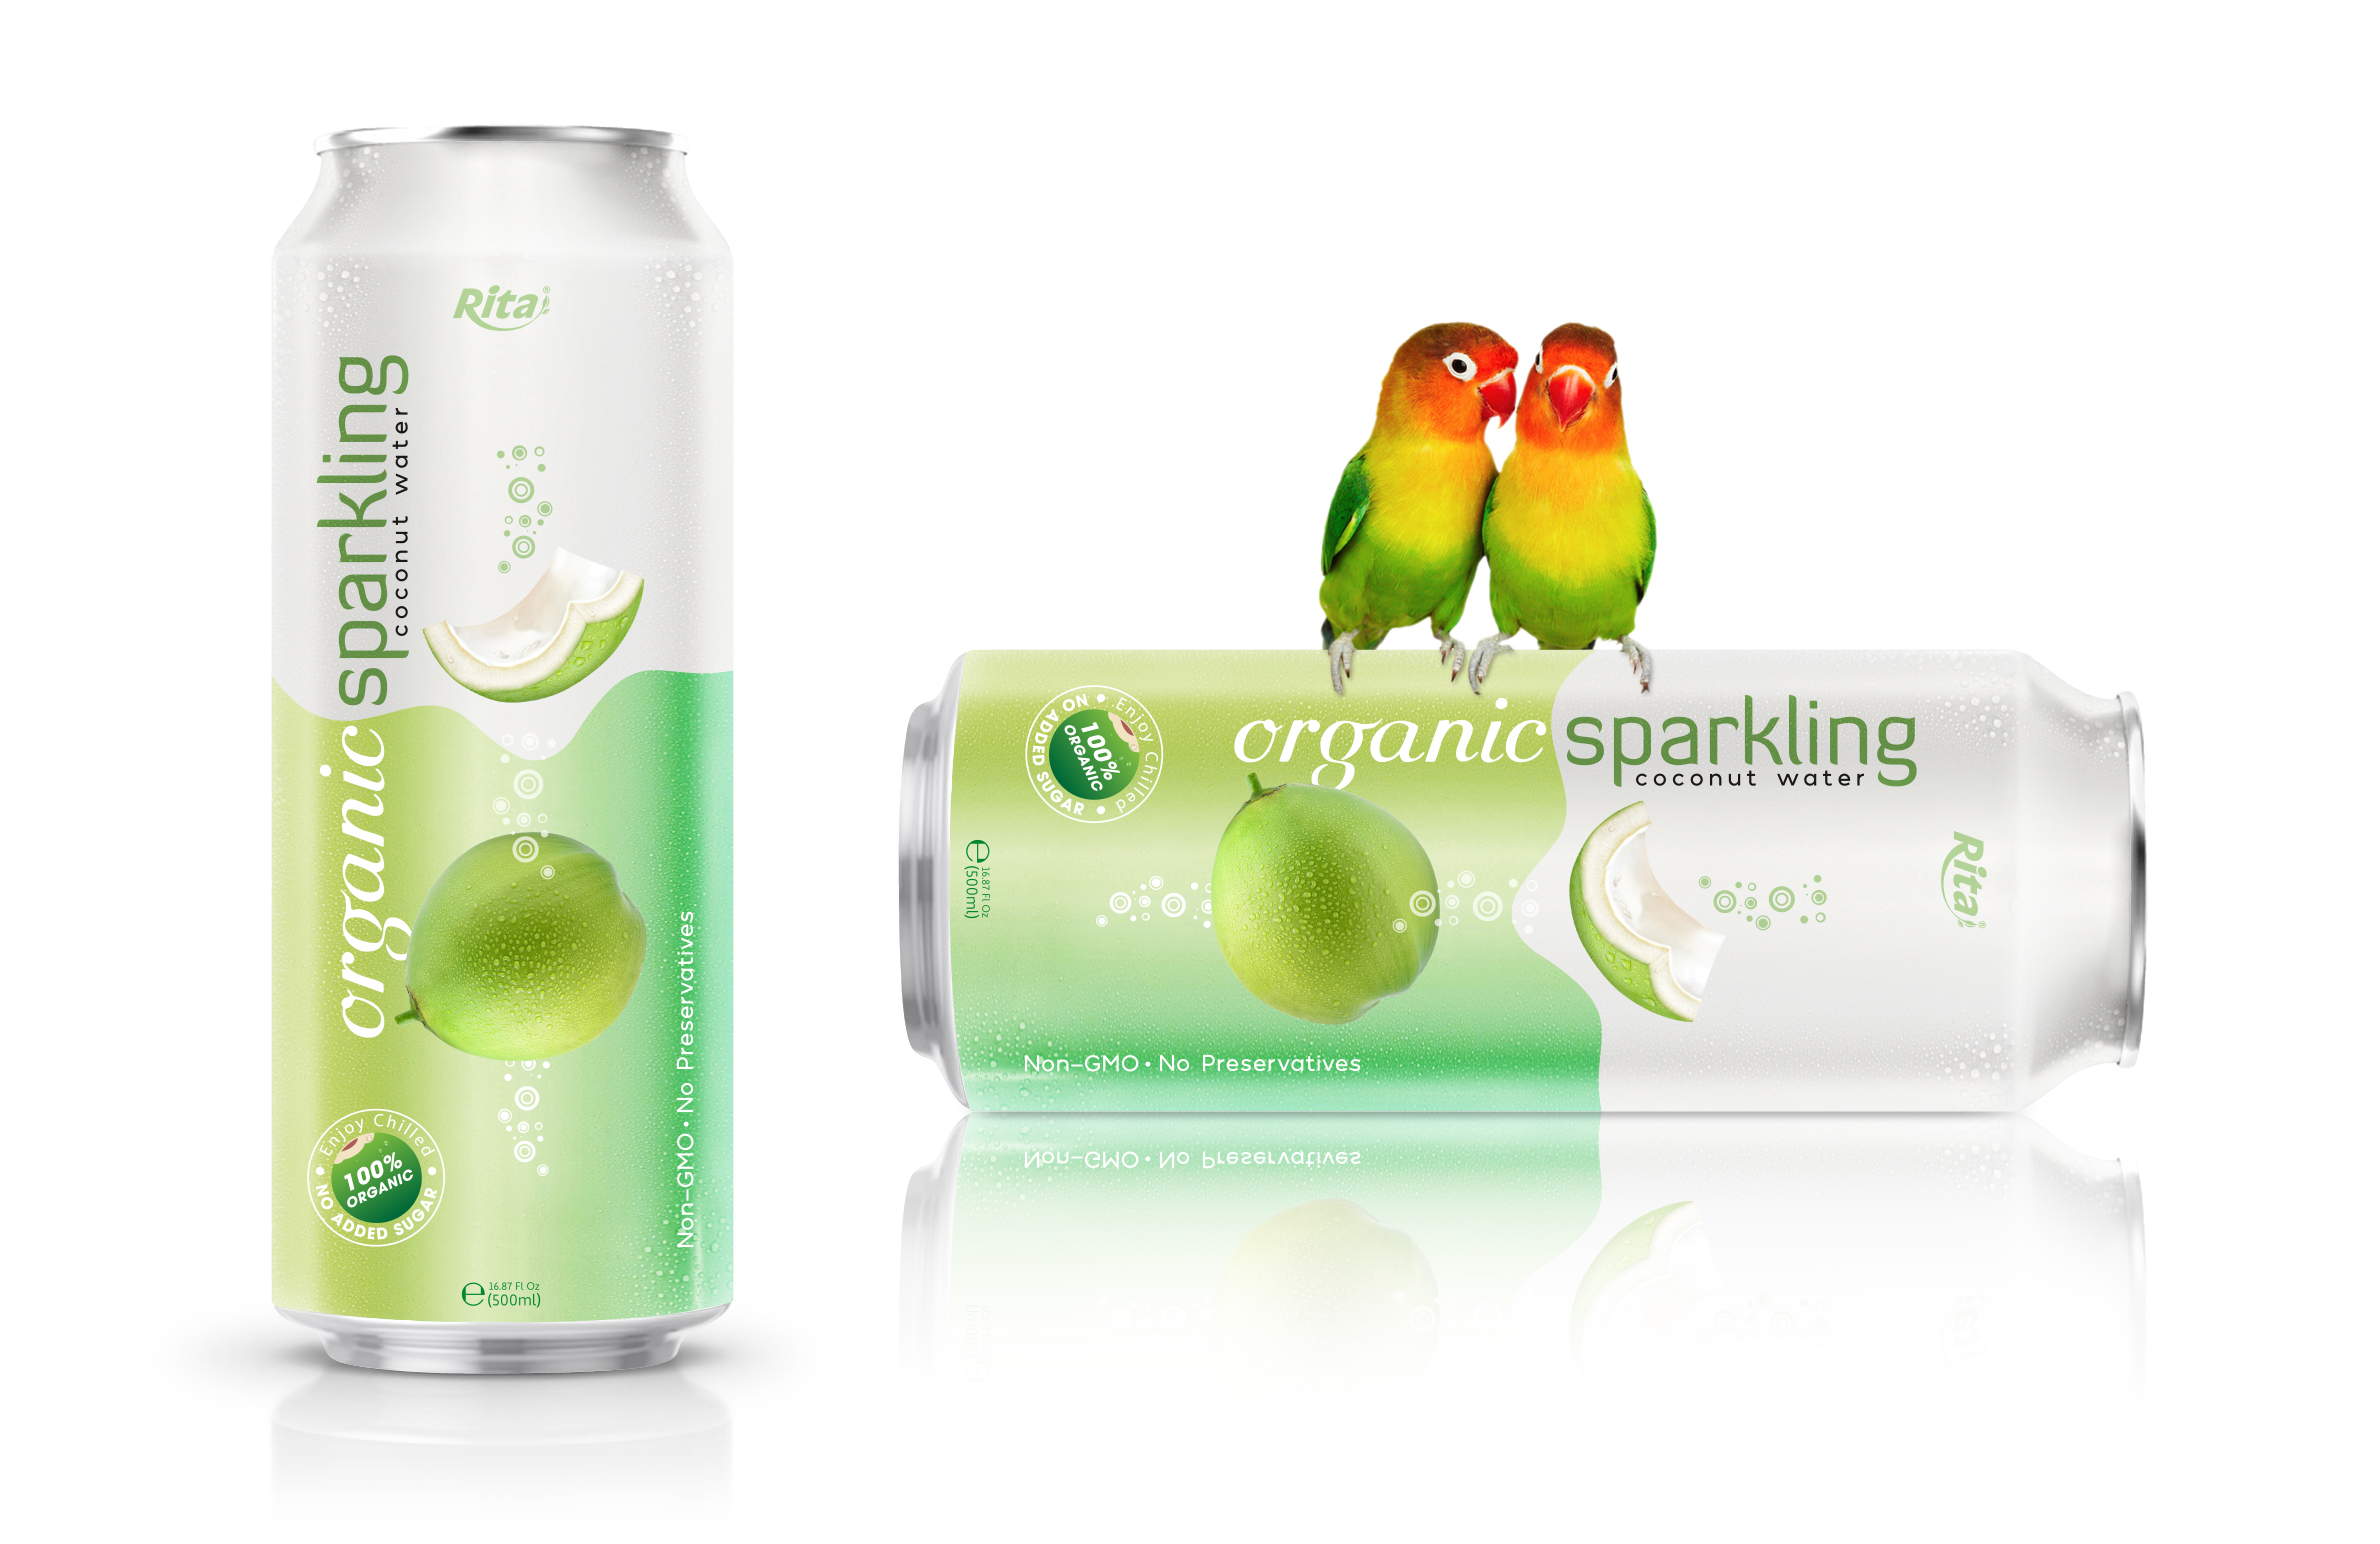 Organic Sparkling Coconut water